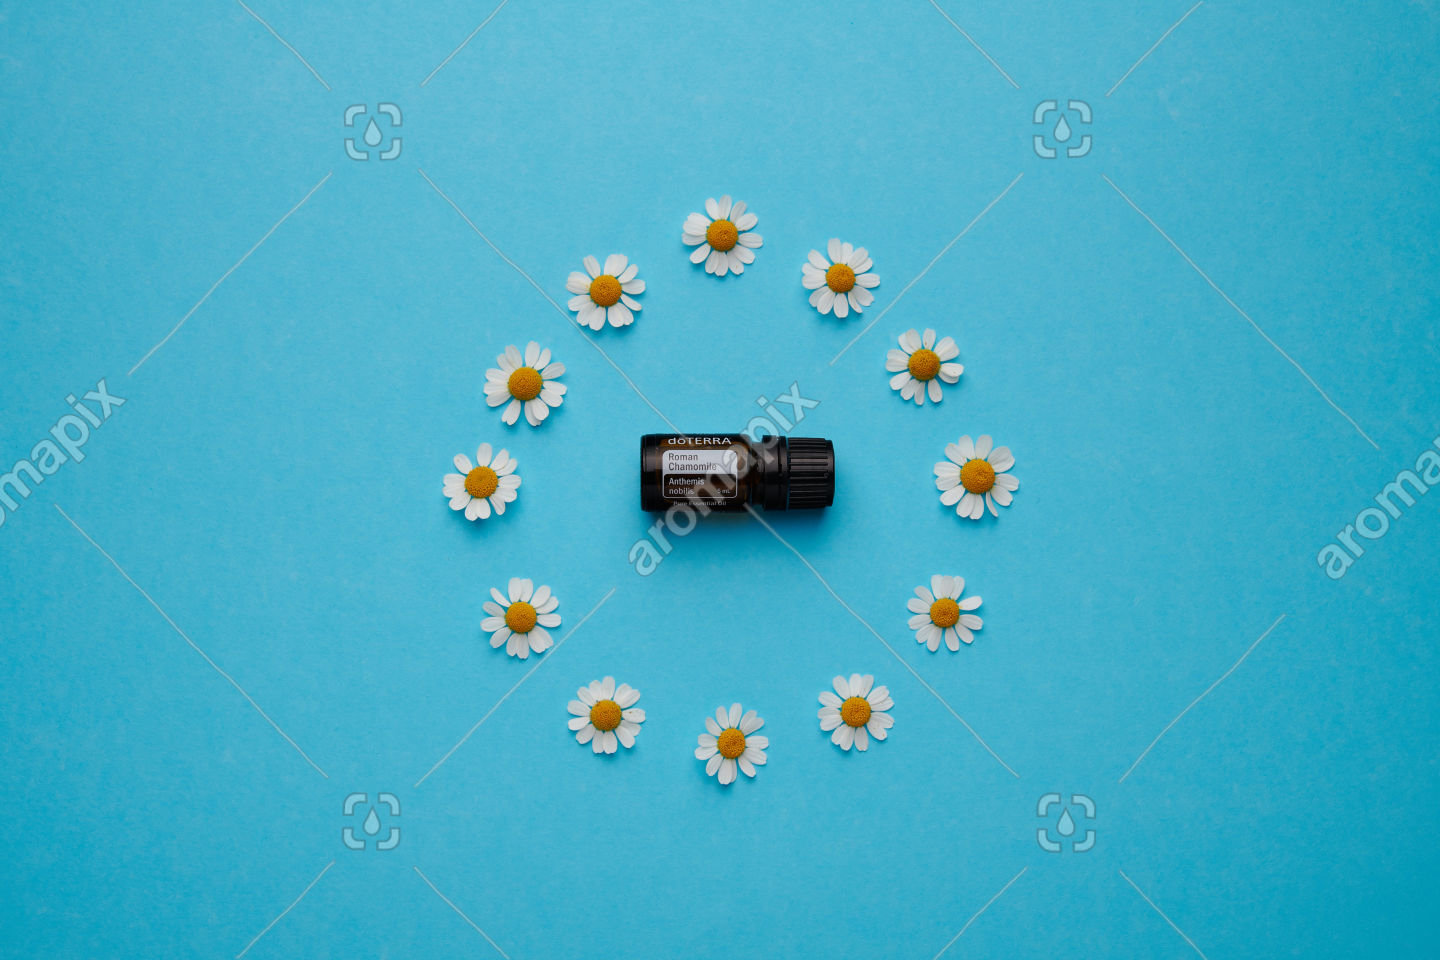 doTERRA Roman Chamomile with chamomile flowers on blue